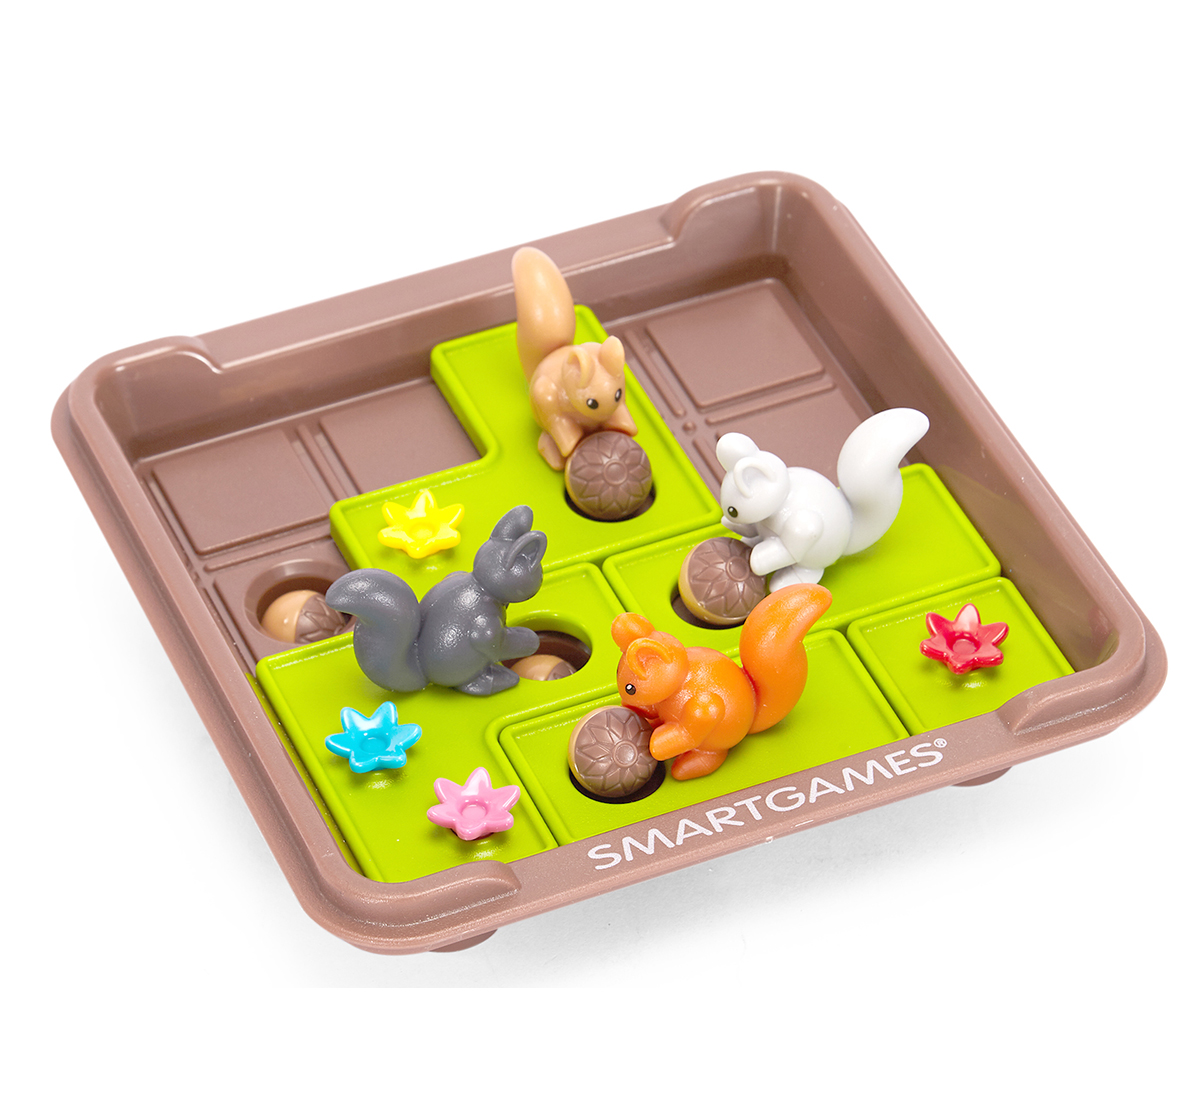 Smart Games | Smart Games Plastic Squirrels Go Nuts (Multicolour) for Kids age 6Y+